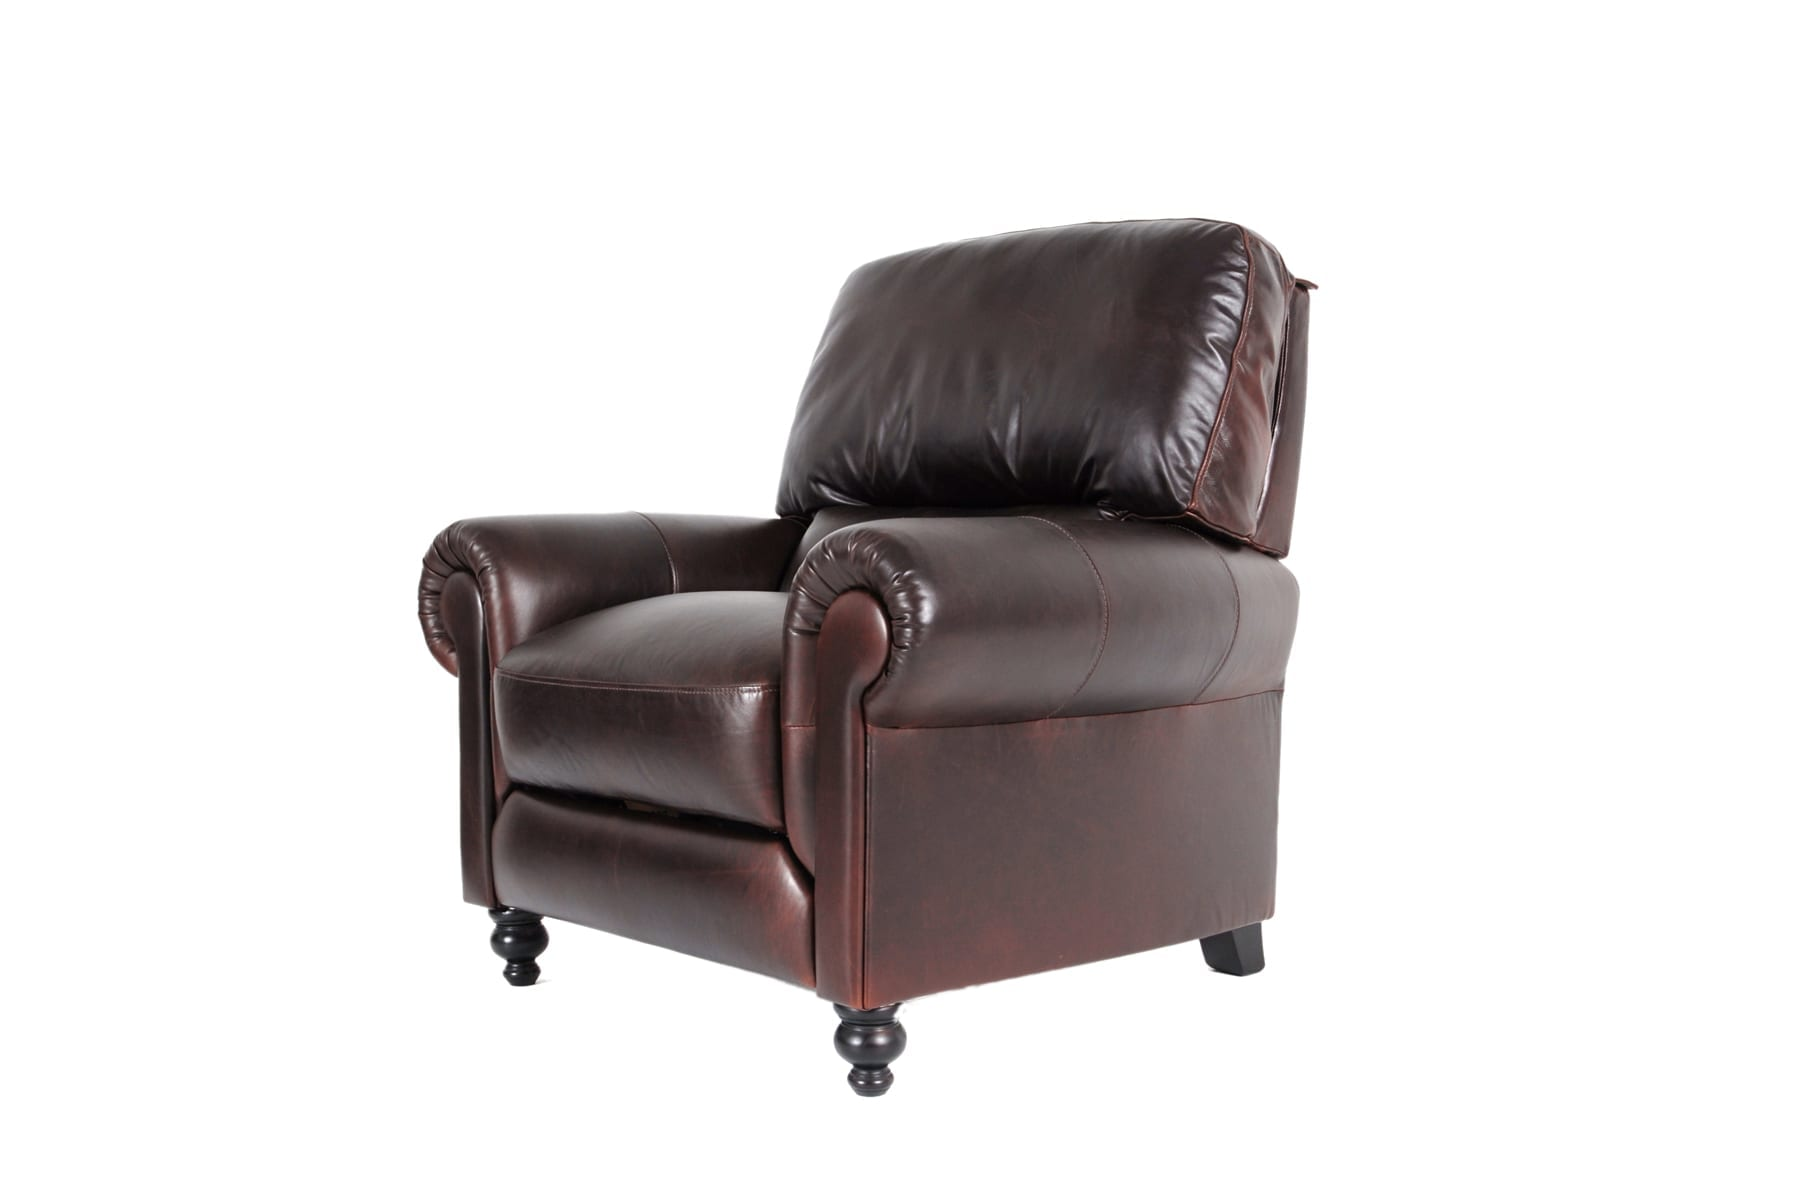 Kovacs Ranfurly Recliner